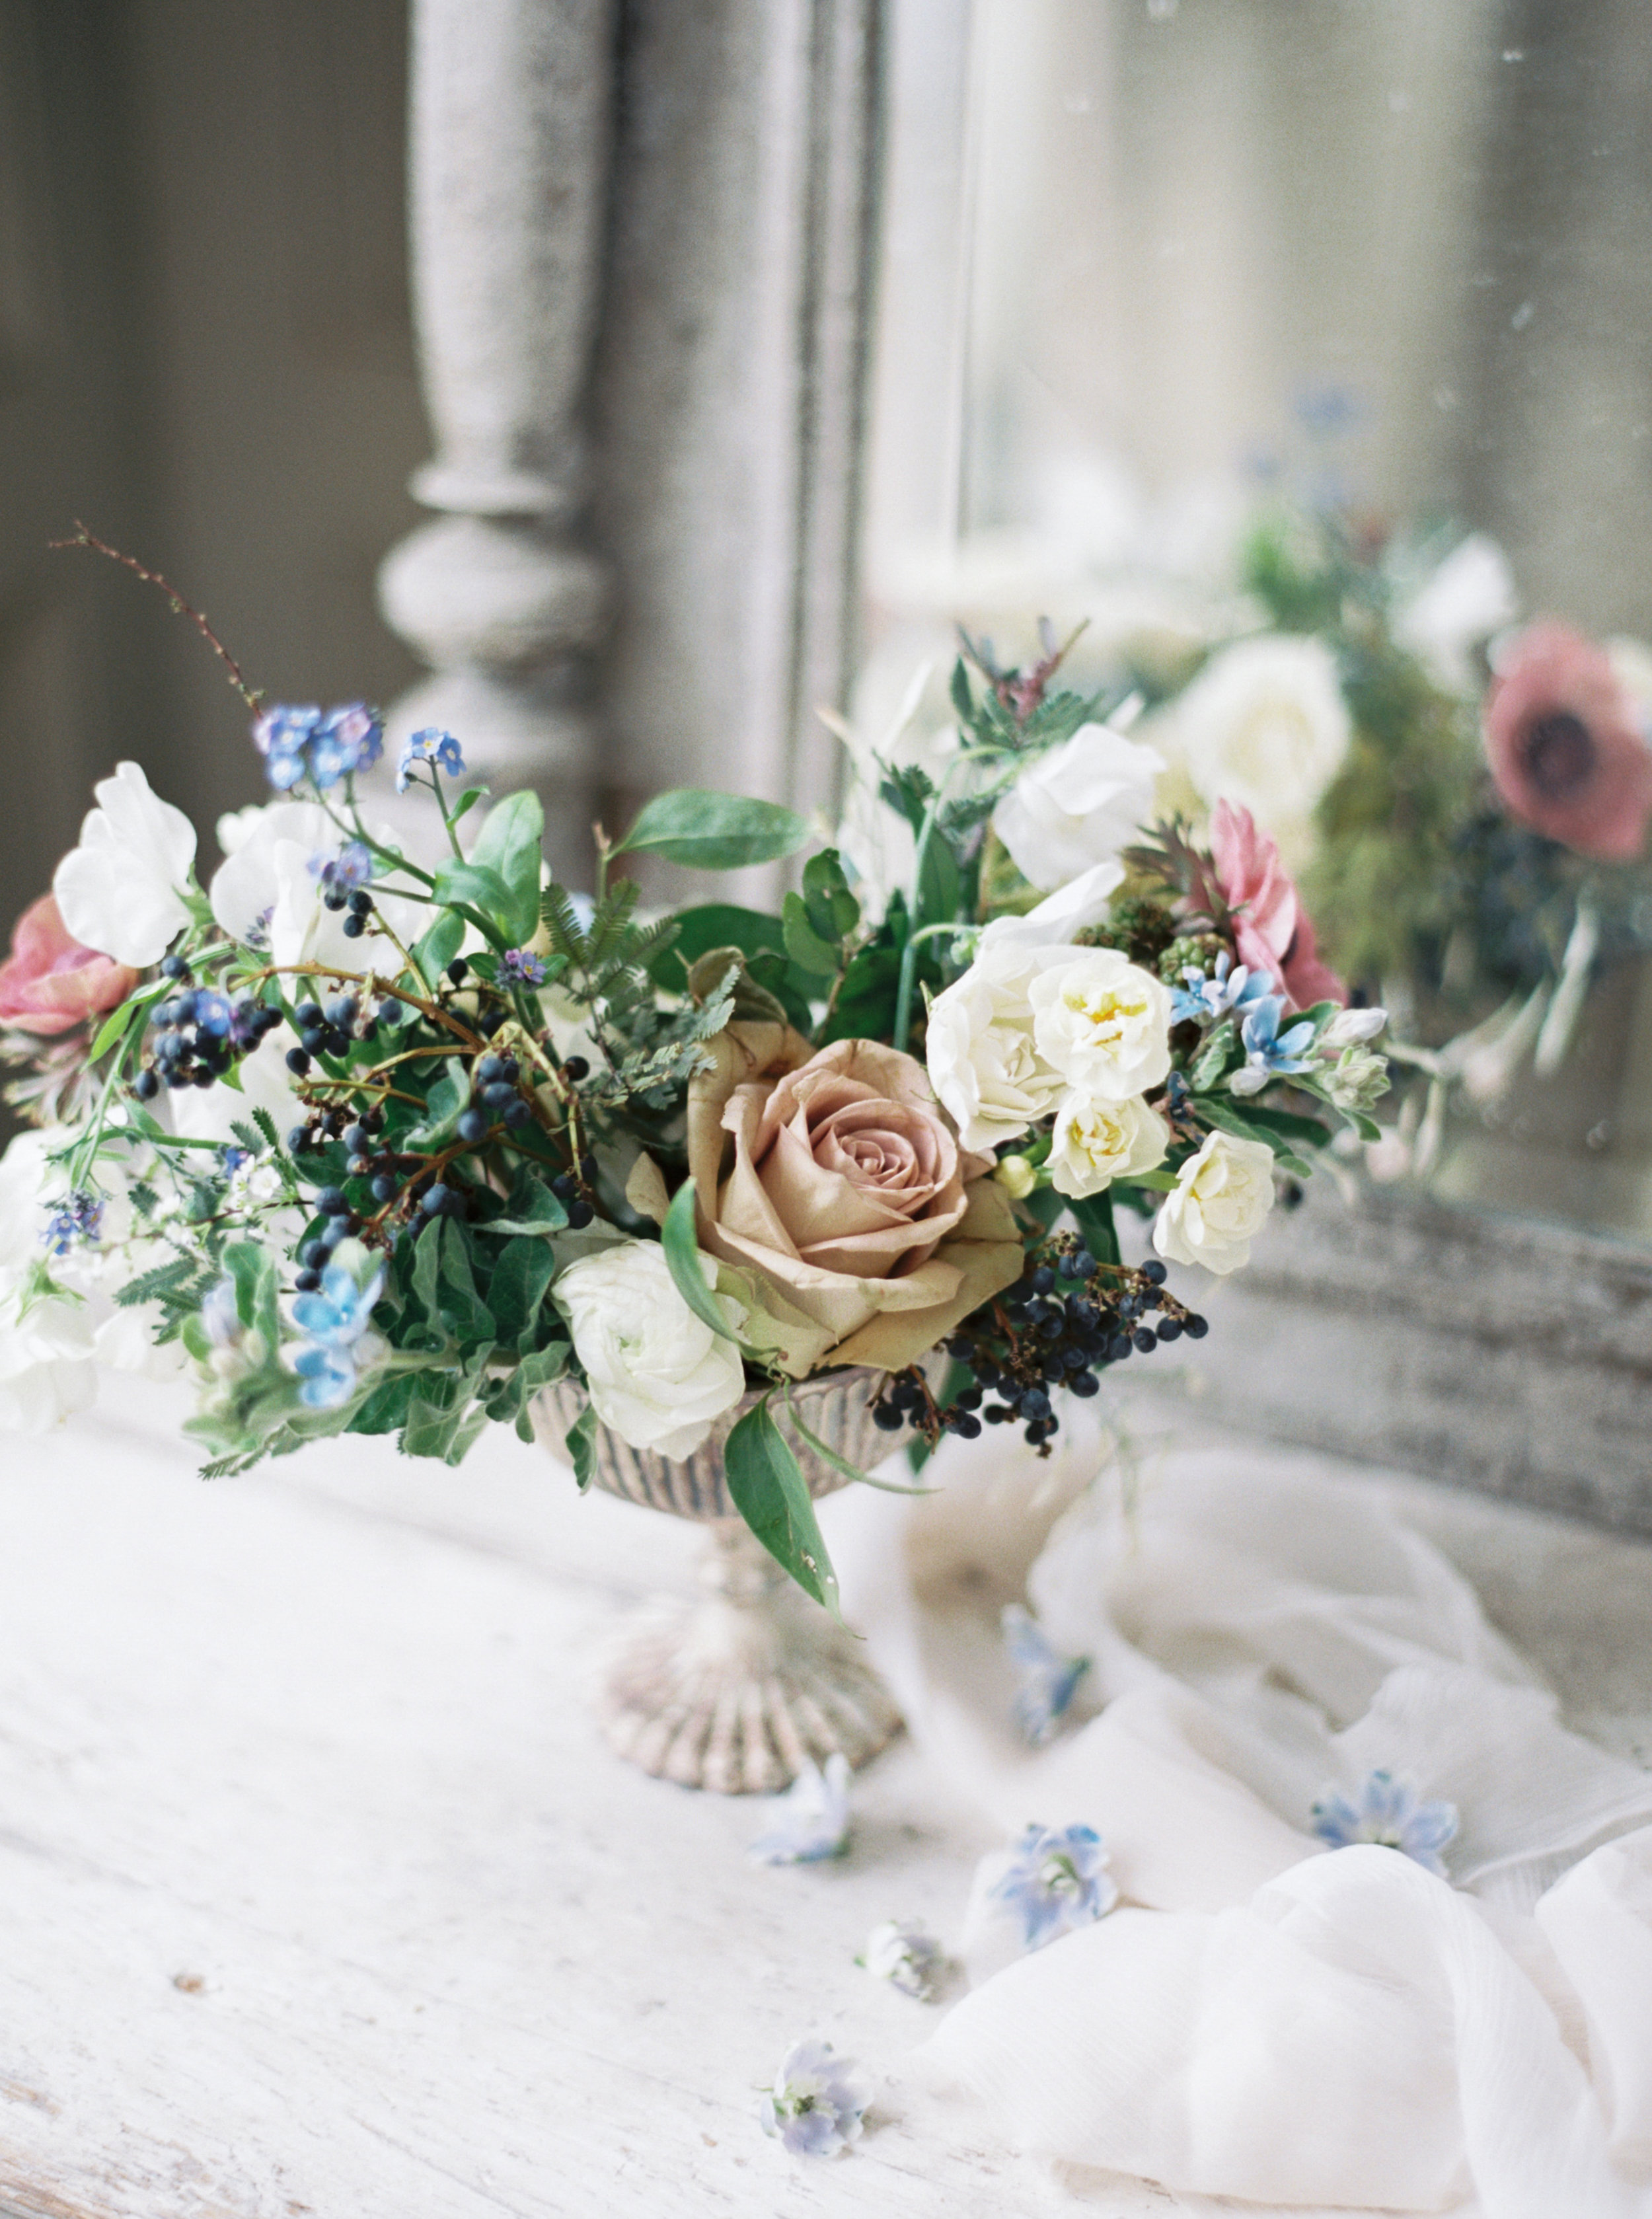 Subscriptions - Spruce up your space with a beautiful arrangement delivered to your home or business on a weekly or biweekly basis. With each new delivery you will enjoy a new color palette and a different vessel; we will collect the vase from the week before.